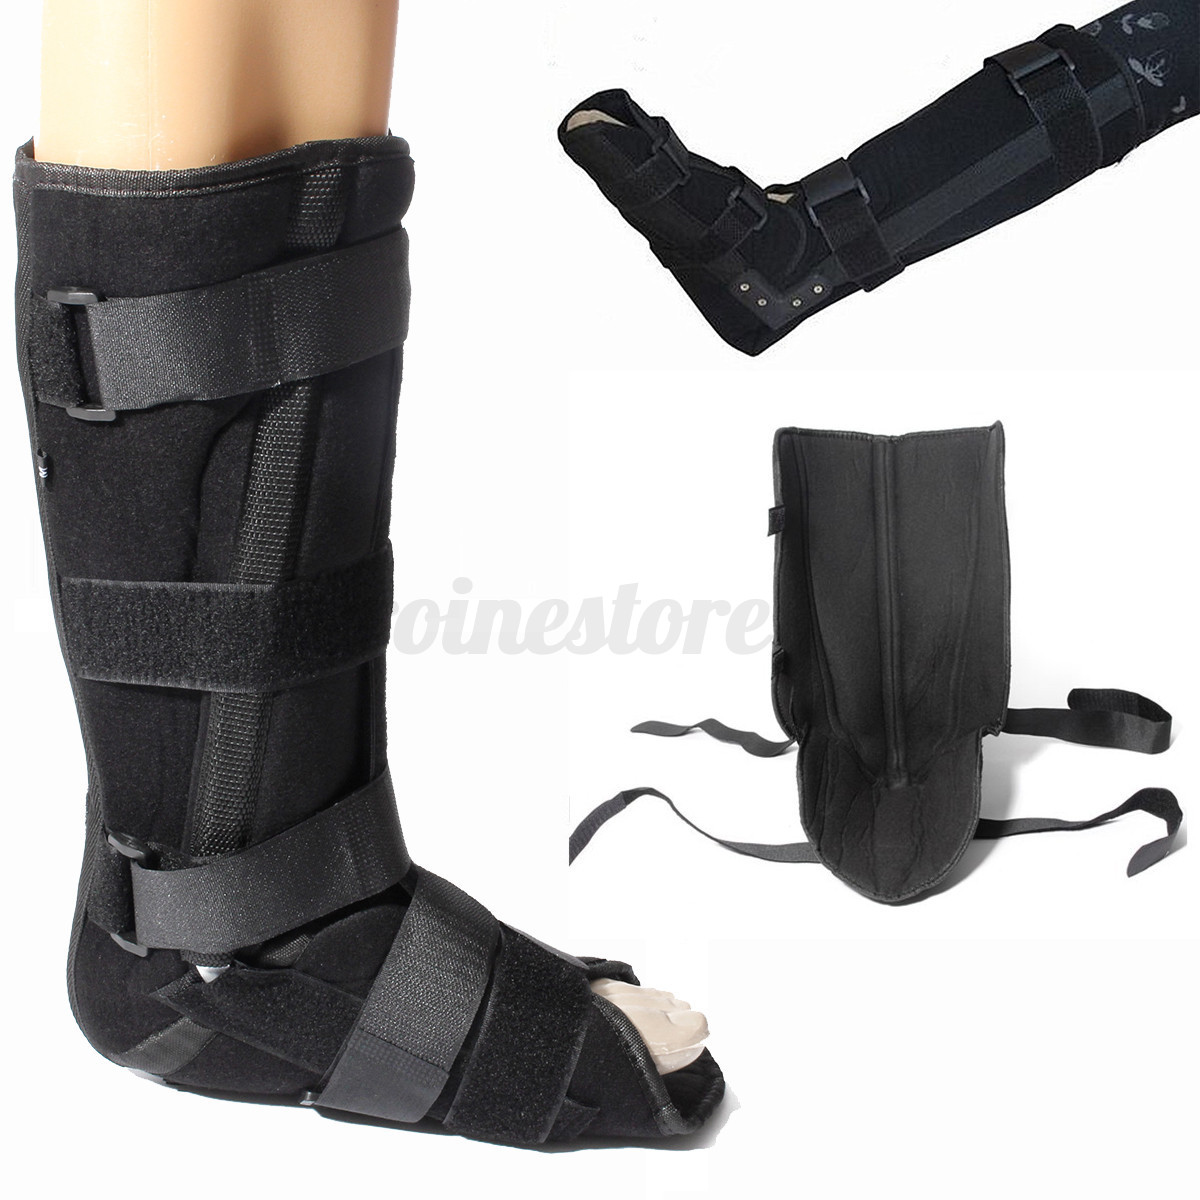 universal neoprene walker boot brace support fracture foot